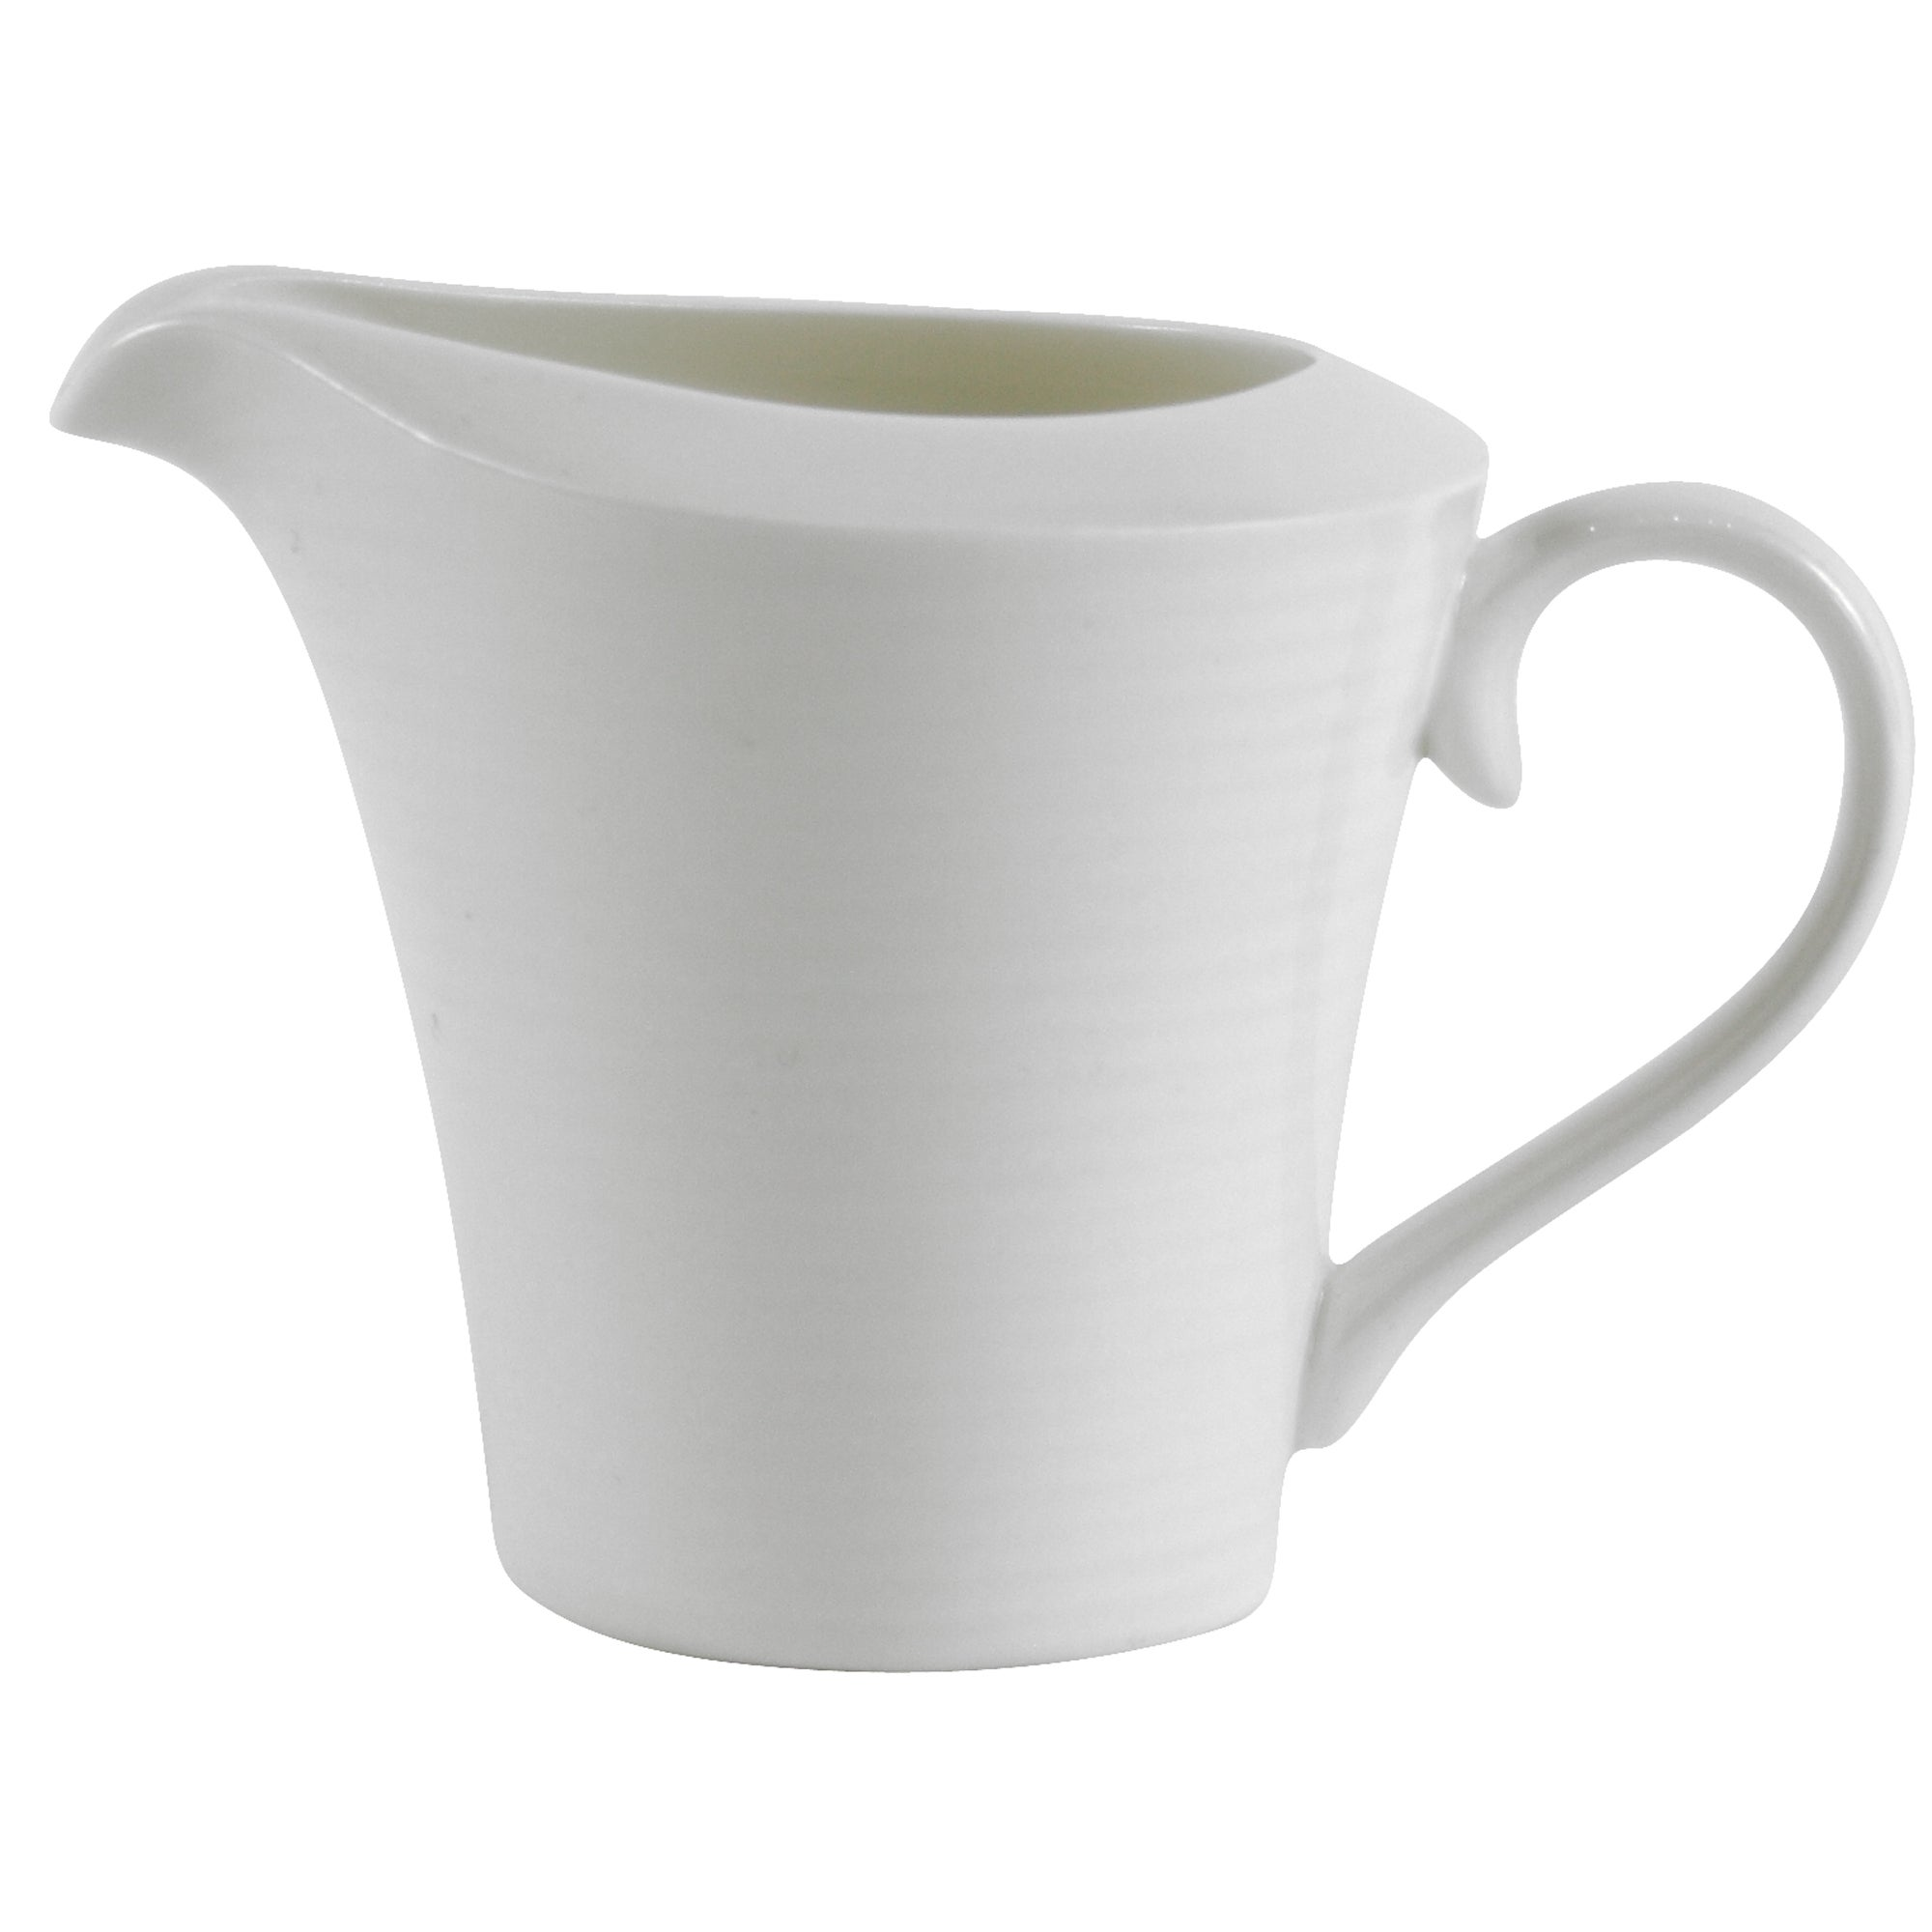 Dorma Windsor Creamer